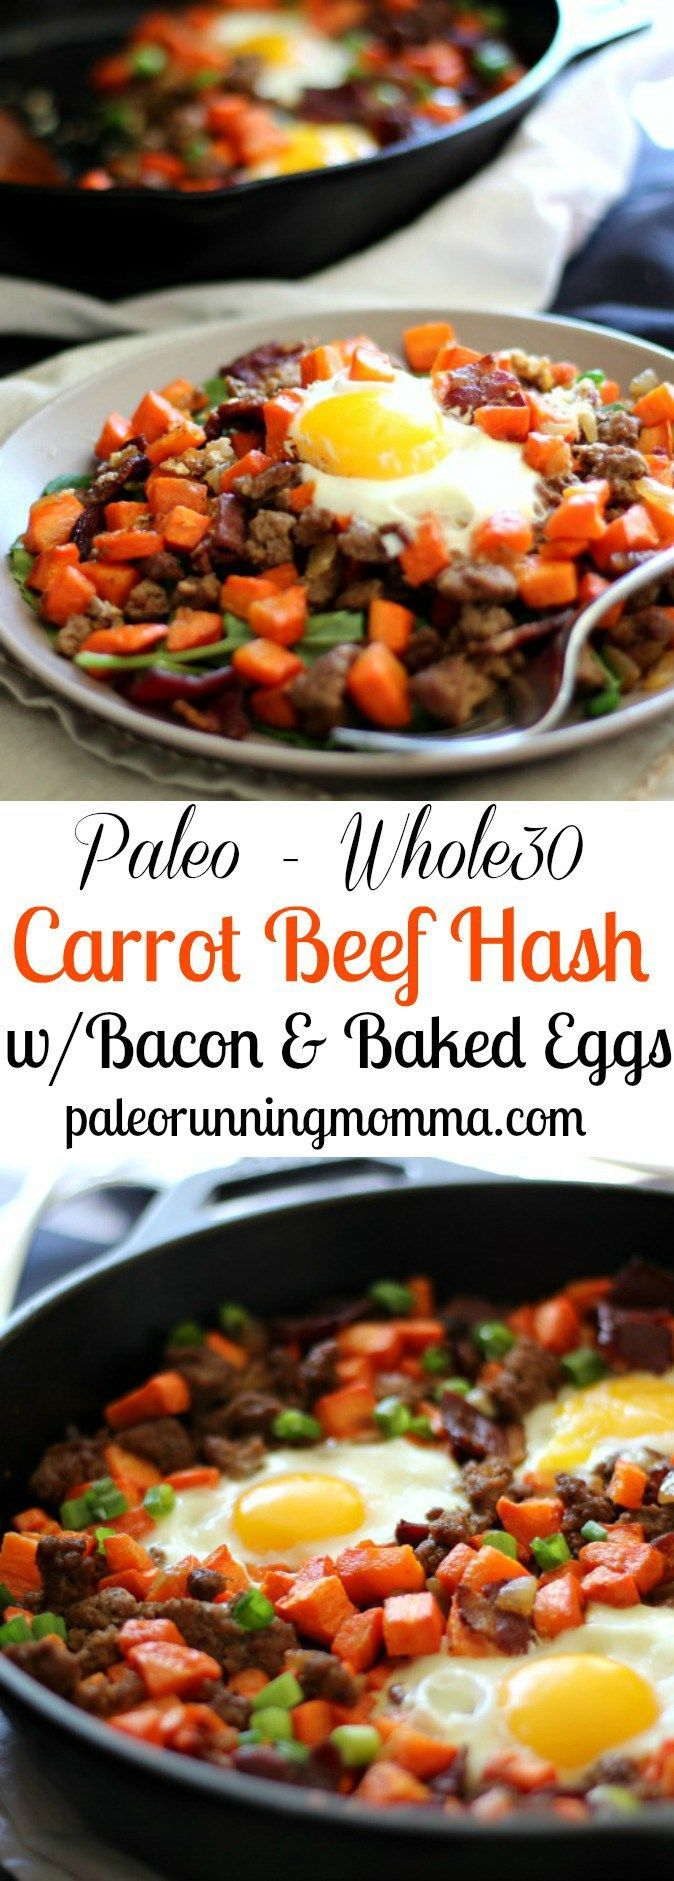 Roasted Carrot Hash With Ground Beef And Bacon Paleo Whole 30 Breakfast Ground Beef Paleo Dinner